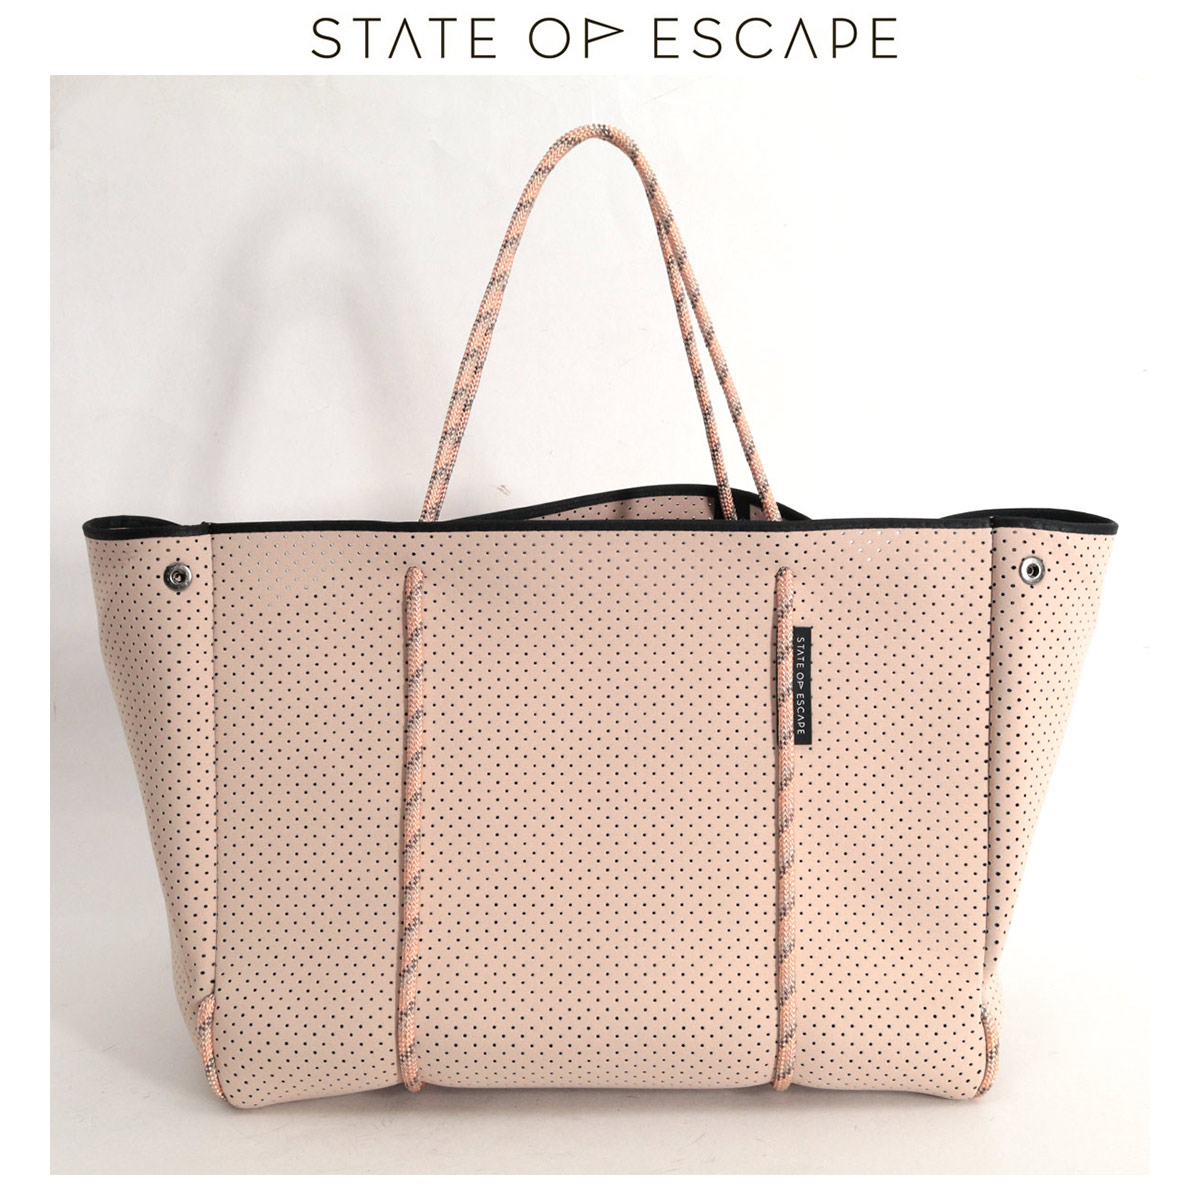 STATE OF ESCAPE ESCAPE CARRYALL (blush) トートバッグ